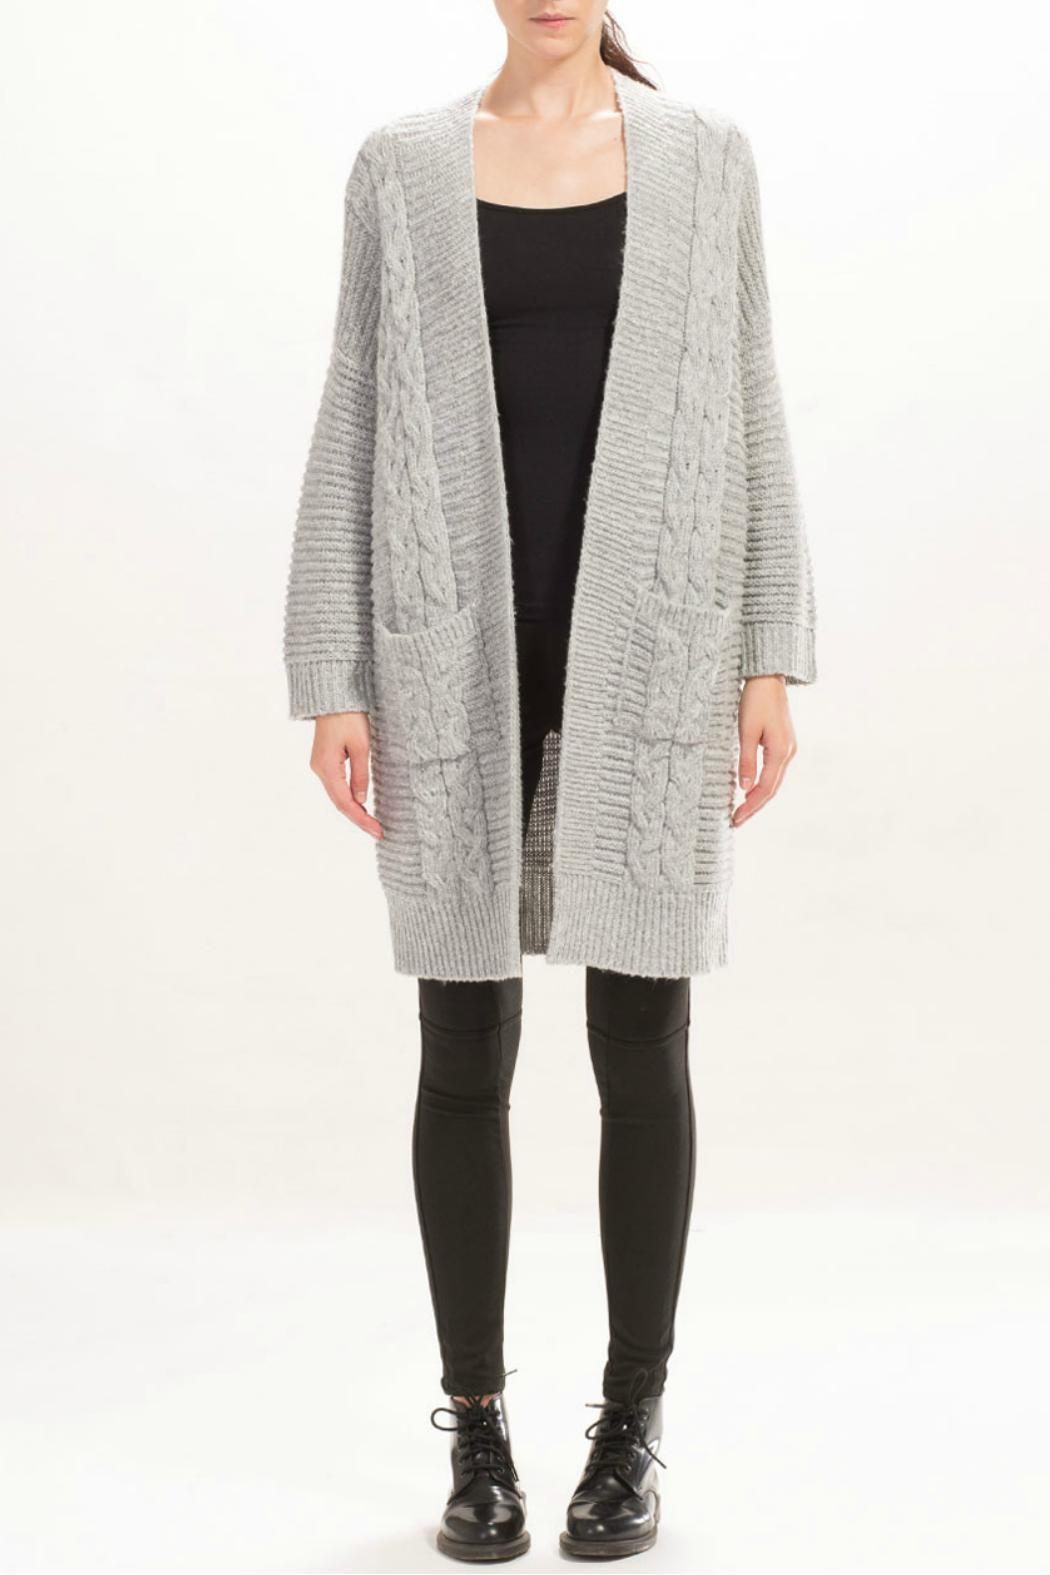 Look by M Cable Knit Long Sweater from New Jersey by Locust Whimsy ...